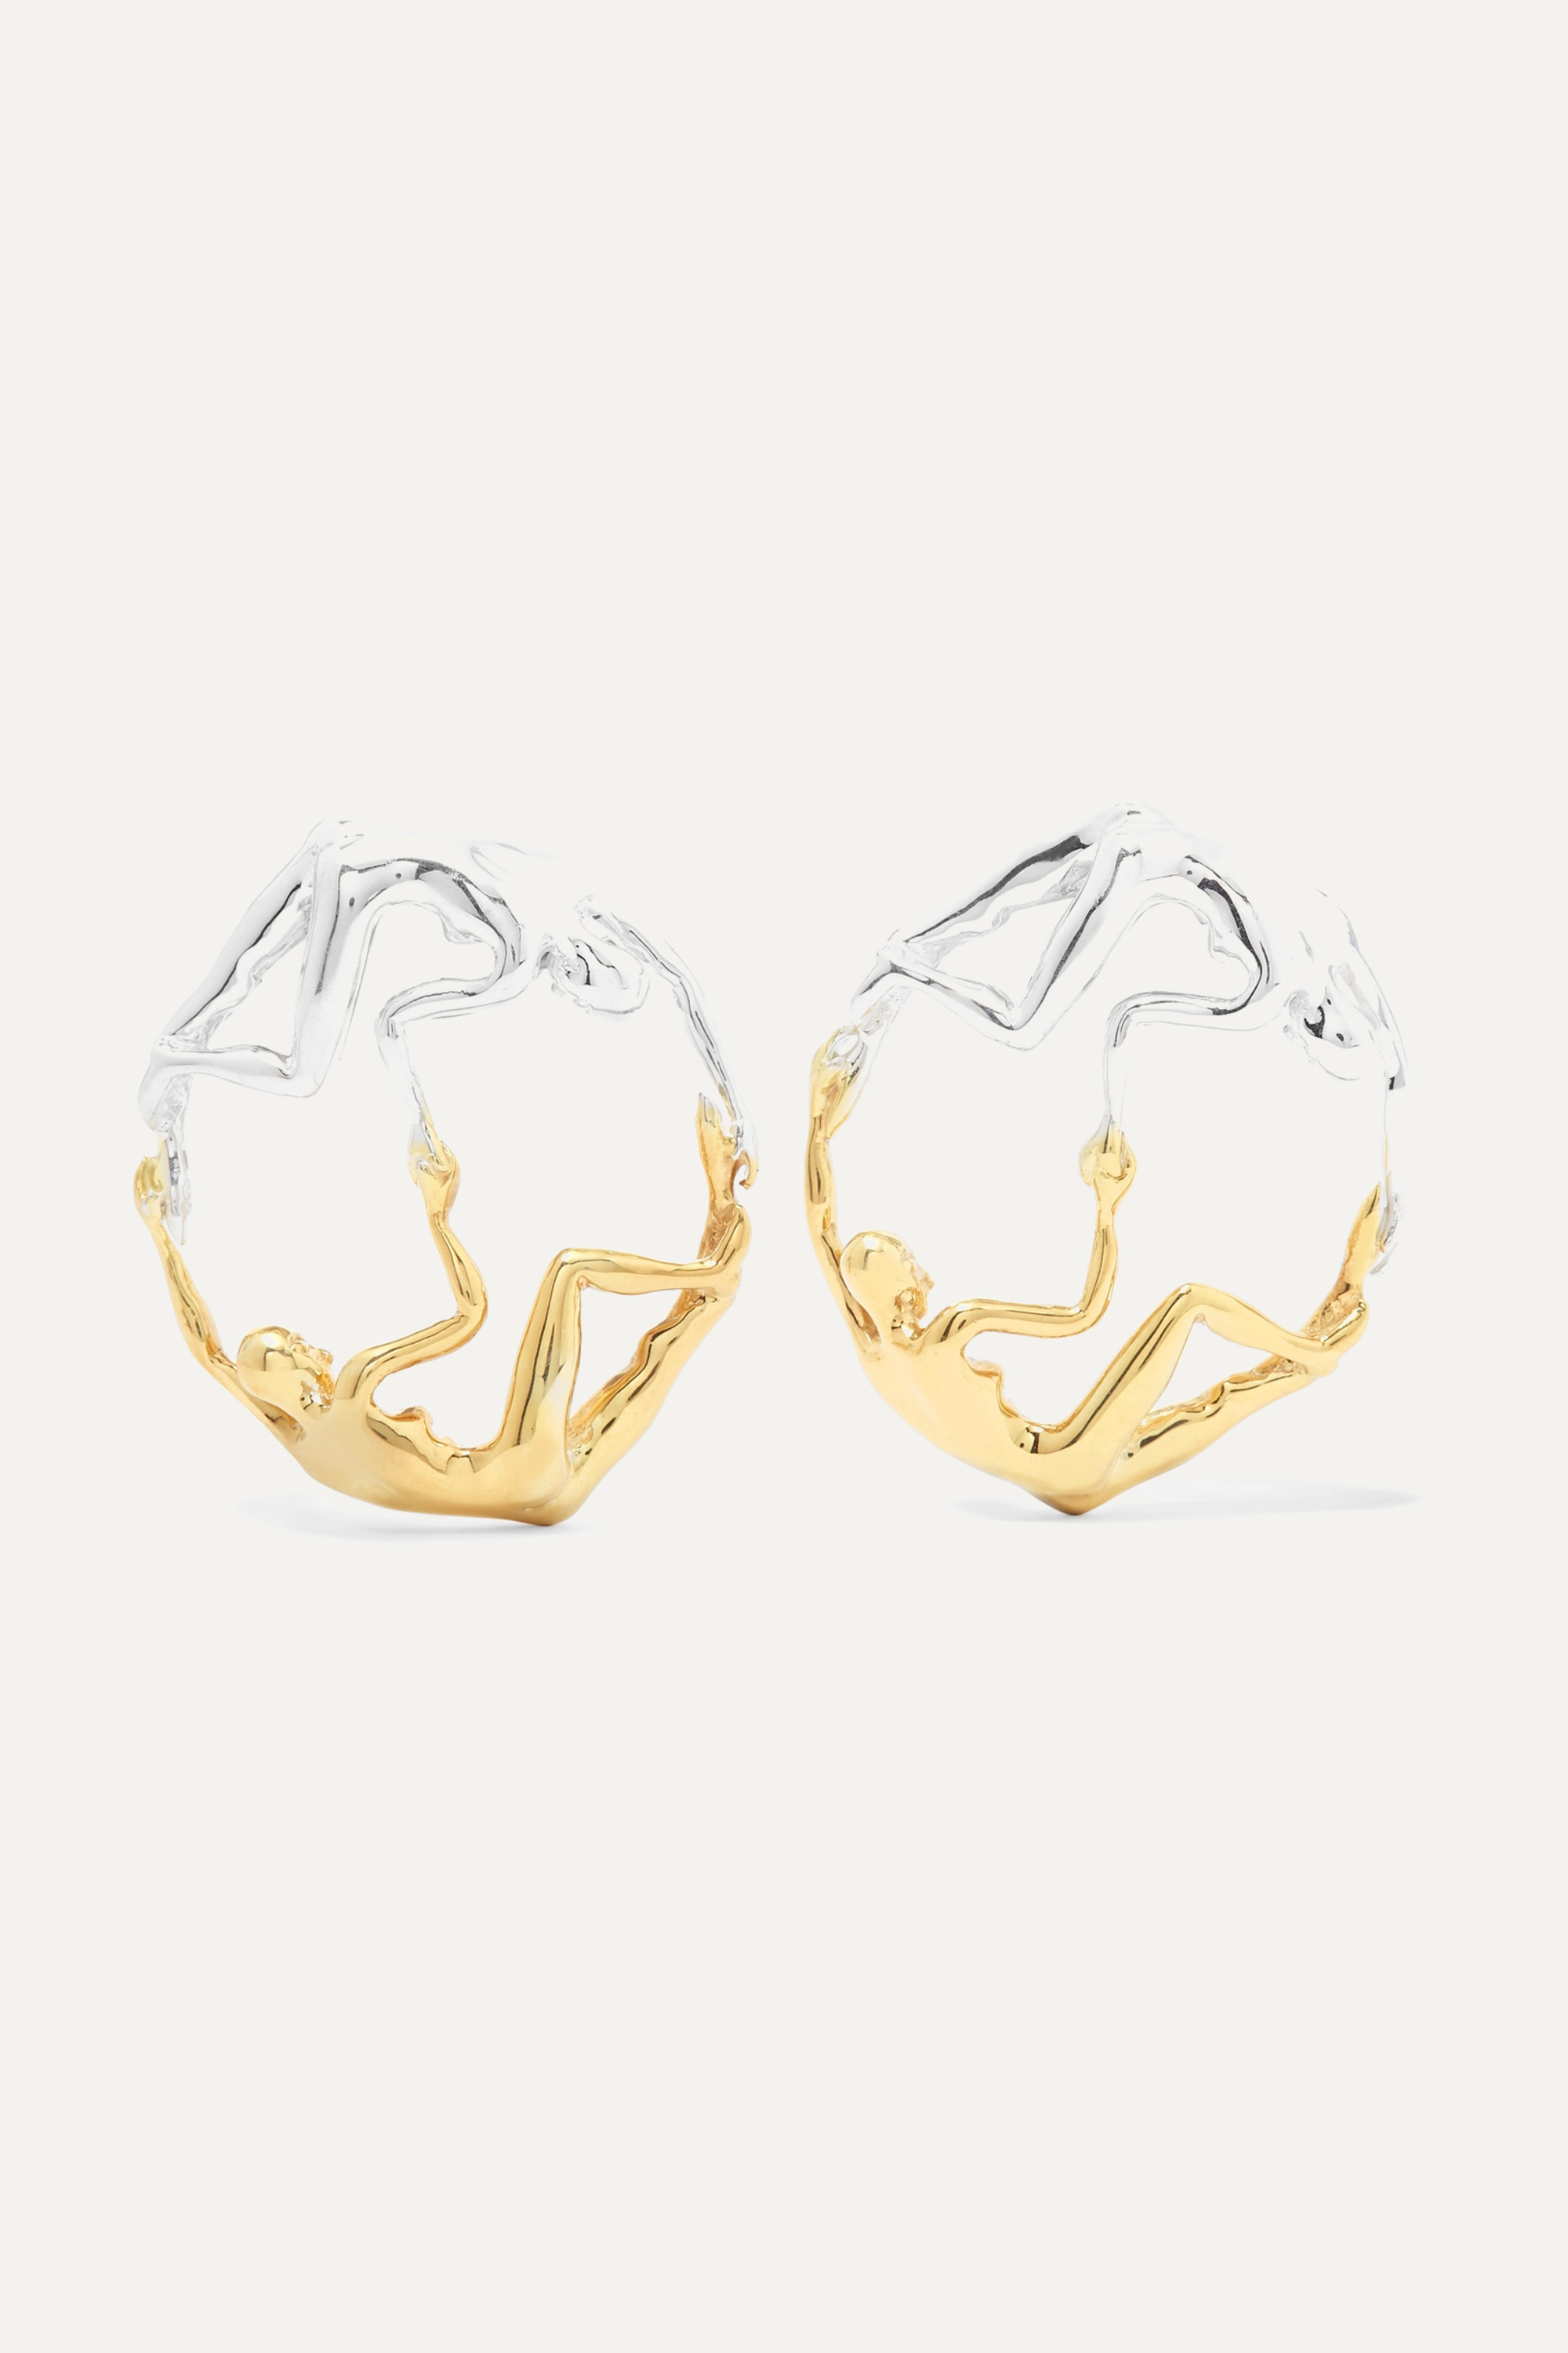 Paola Vilas Dança silver and gold-plated earrings